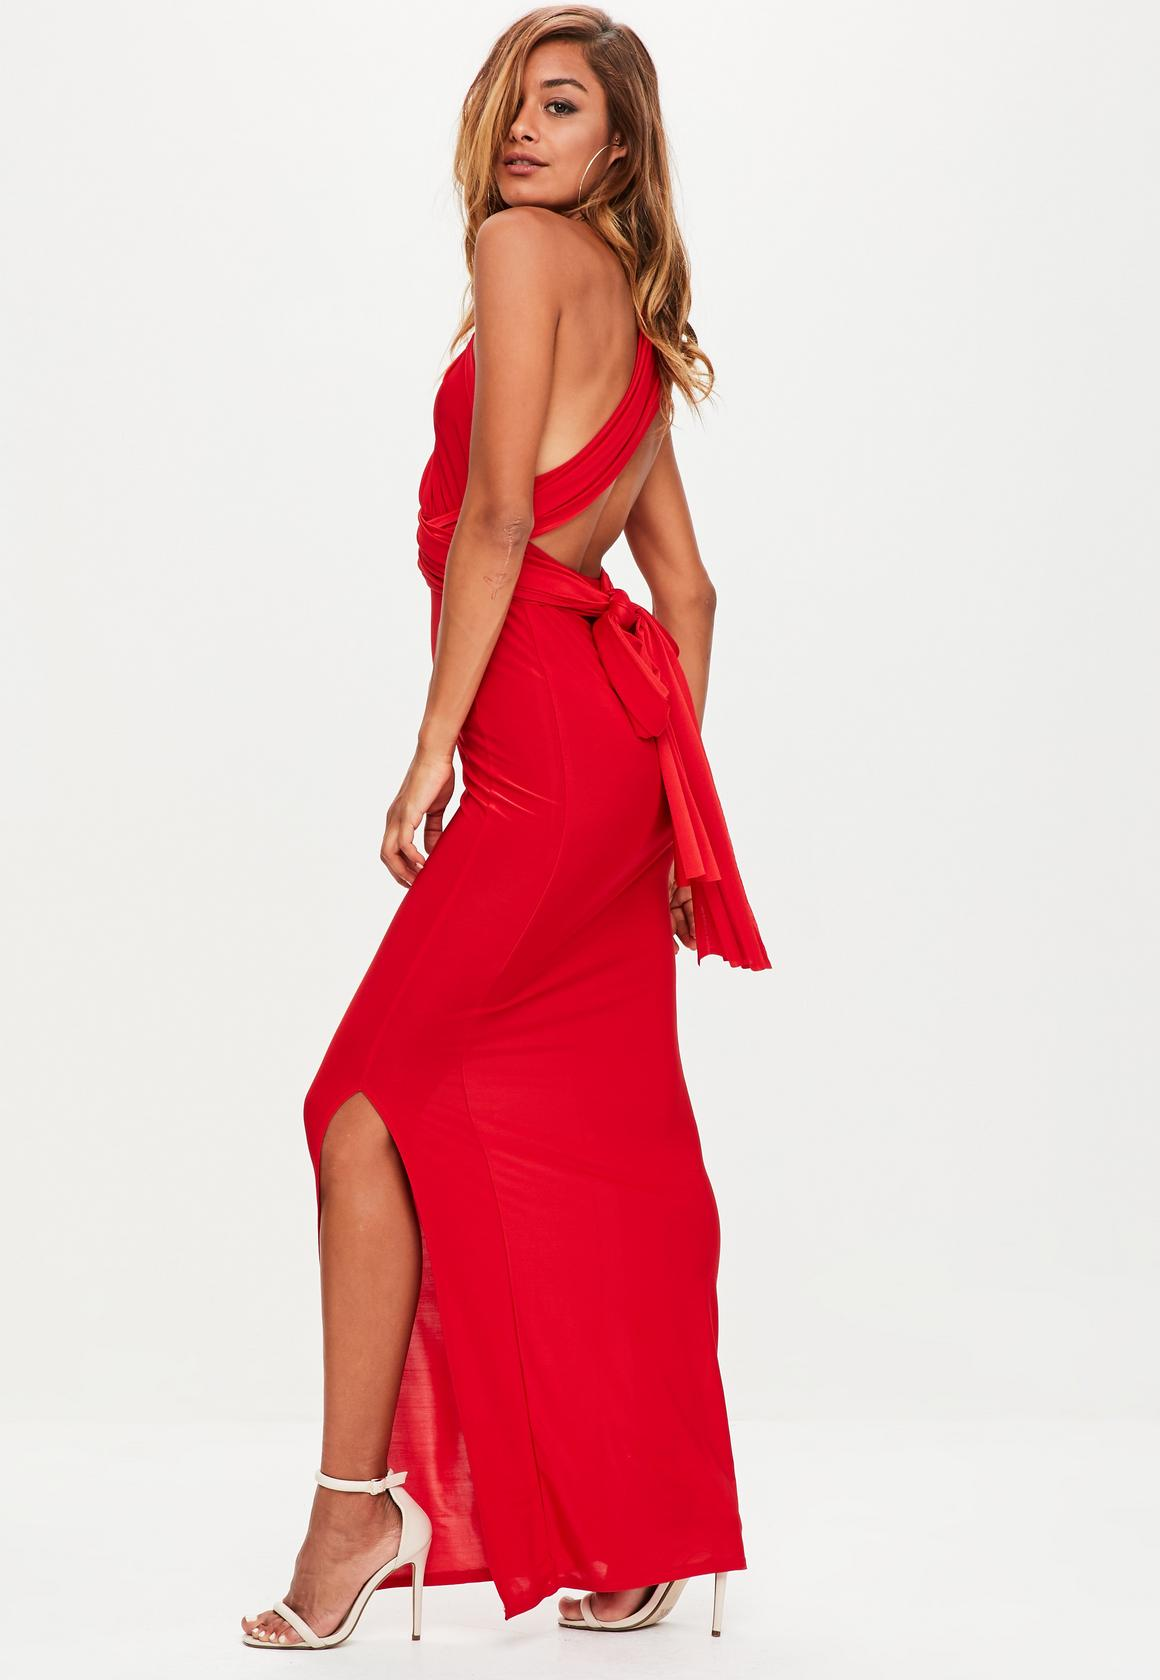 red slinky multiway dress